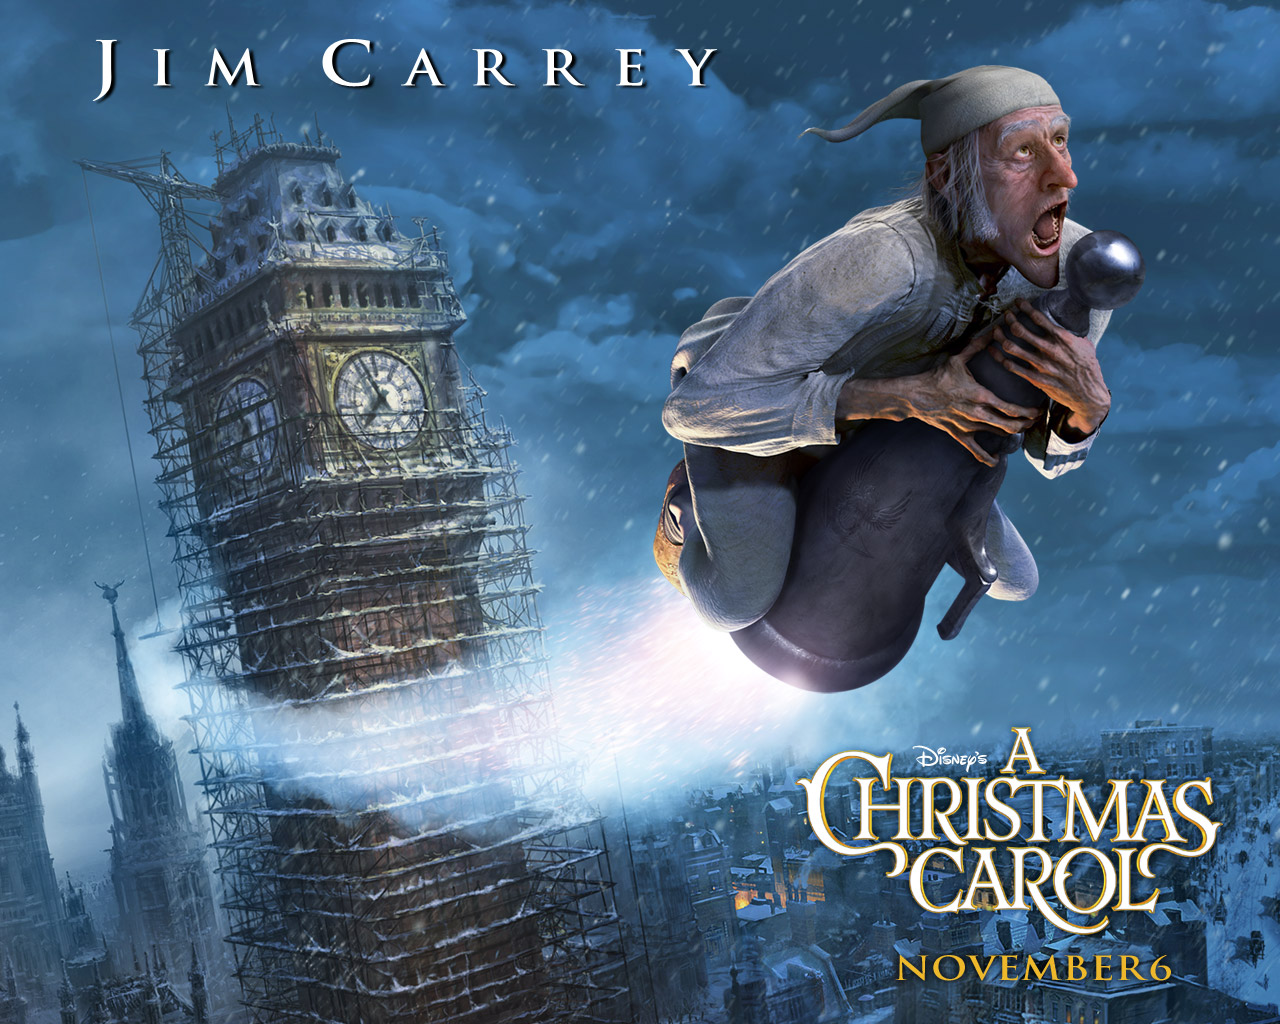 Jim Carrey Christmas Carol.Christina A Christmas Carol With Jim Carrey